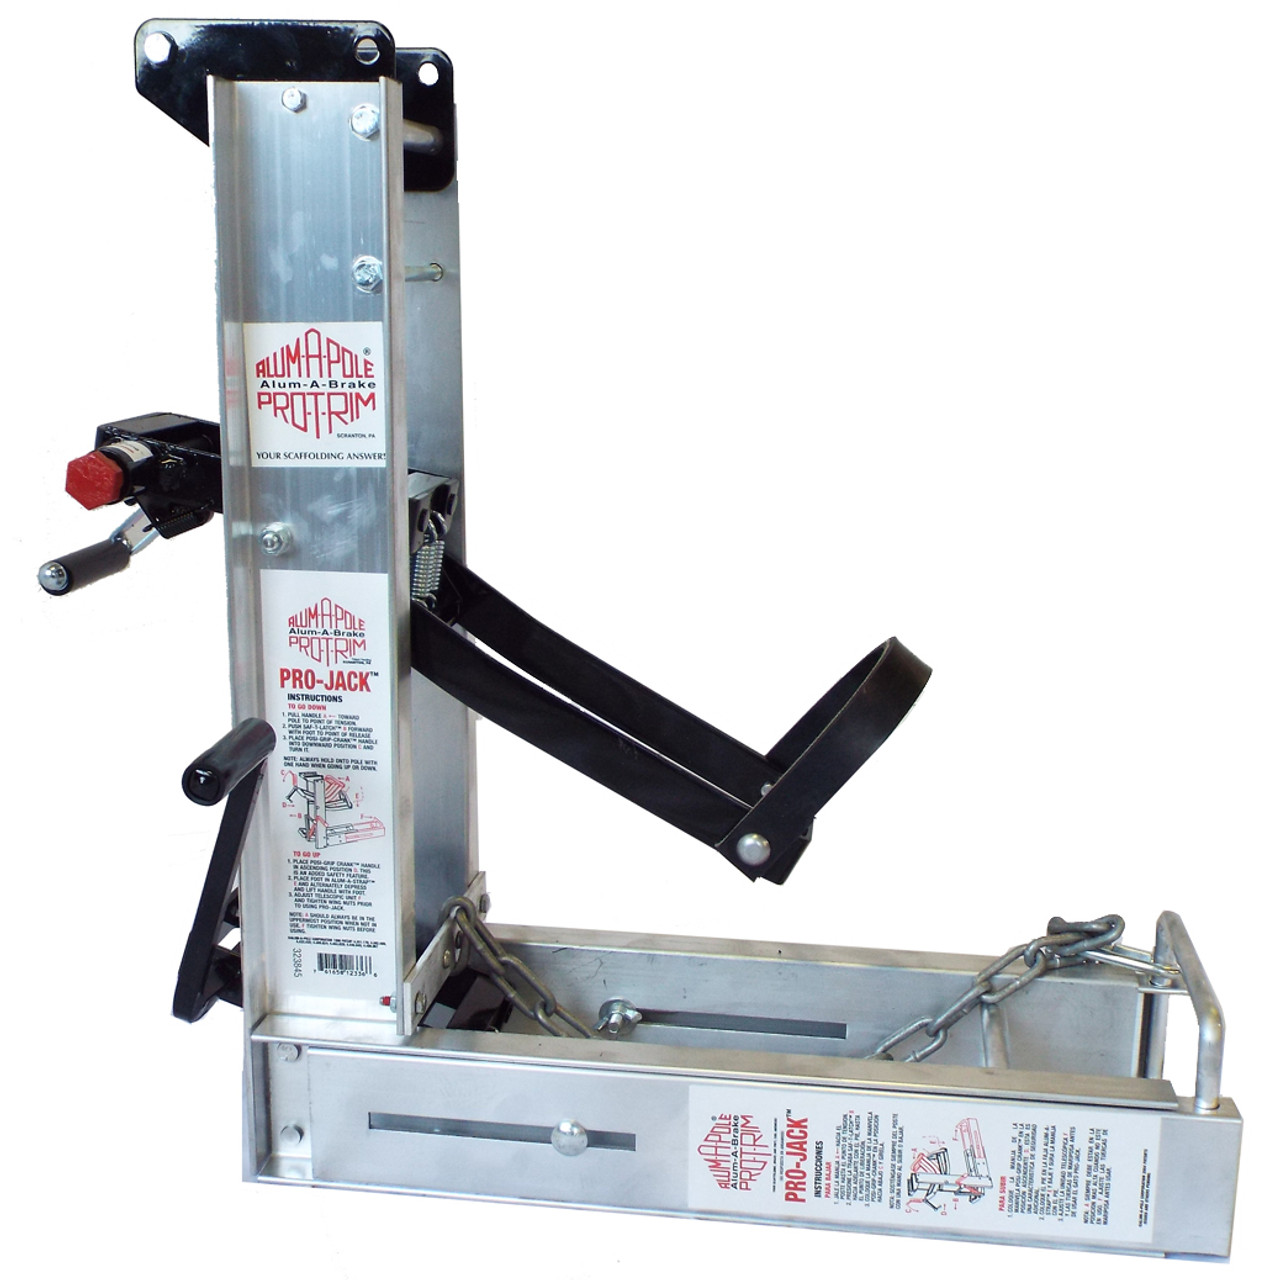 Alum-A-Pole Pump Jacks